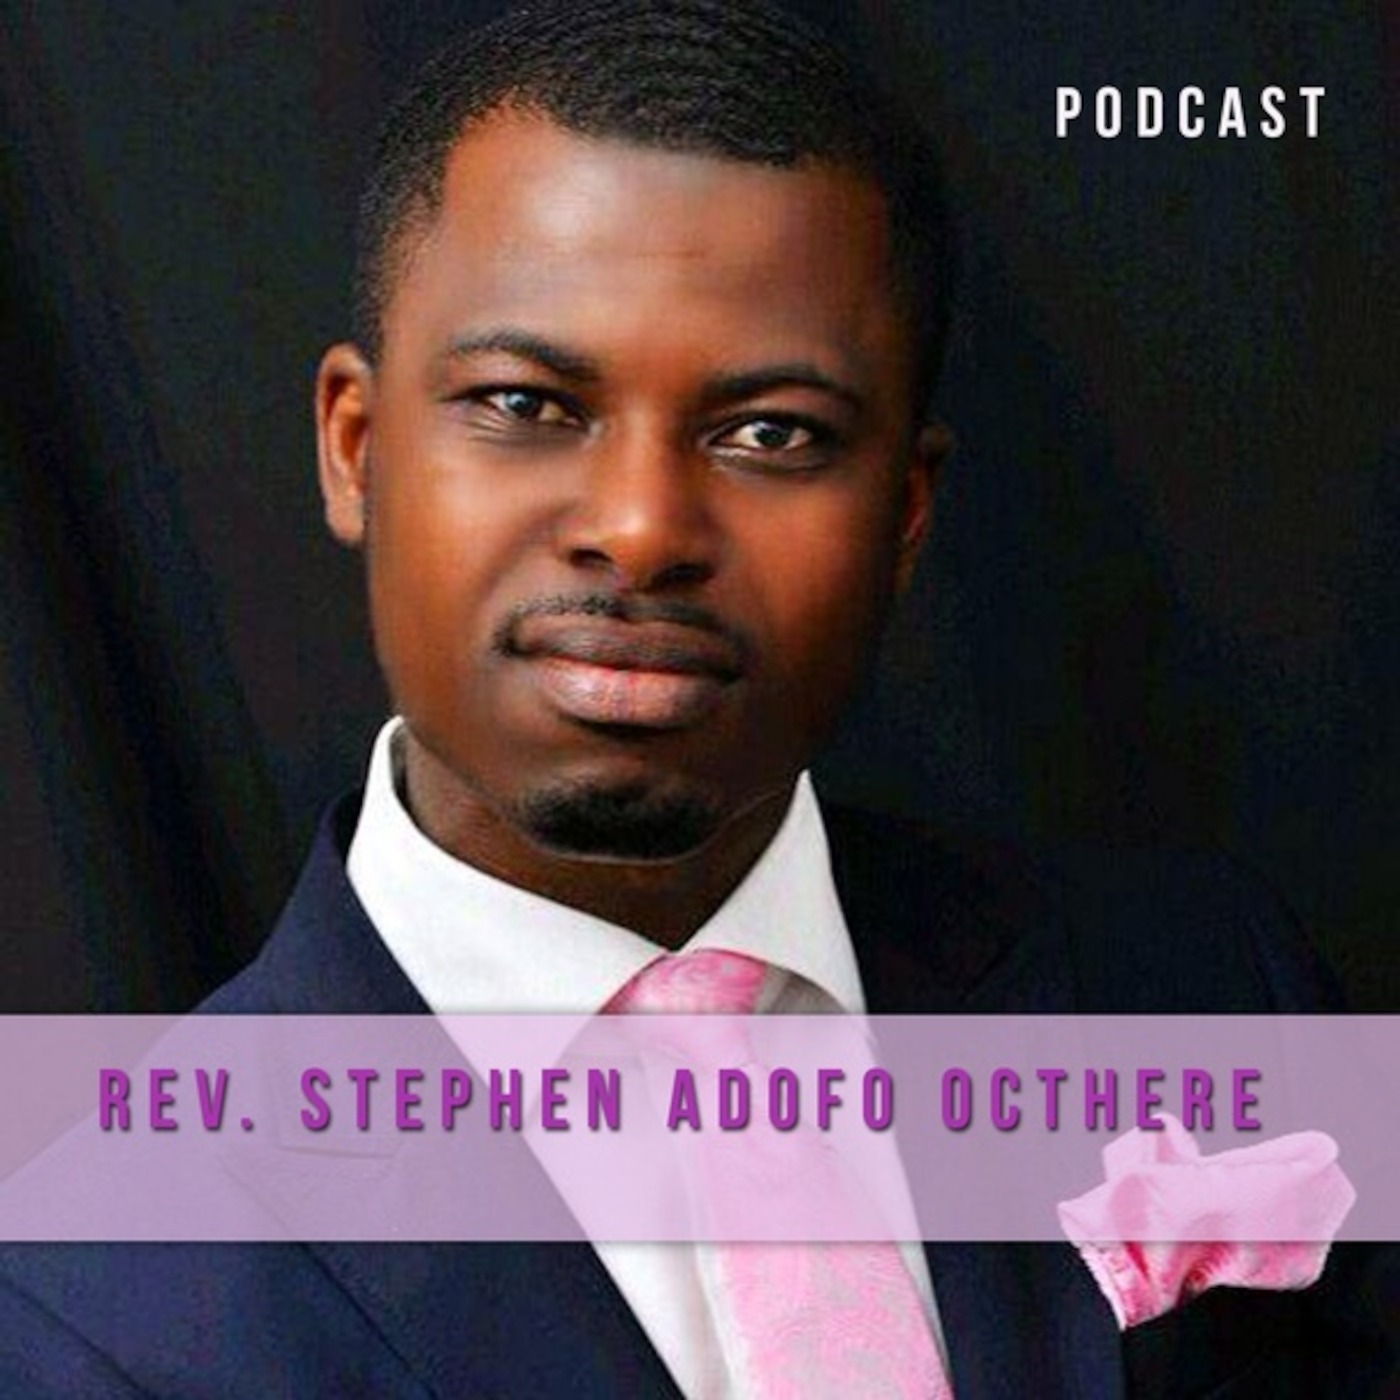 Stephen Adofo-Otchere's Podcast